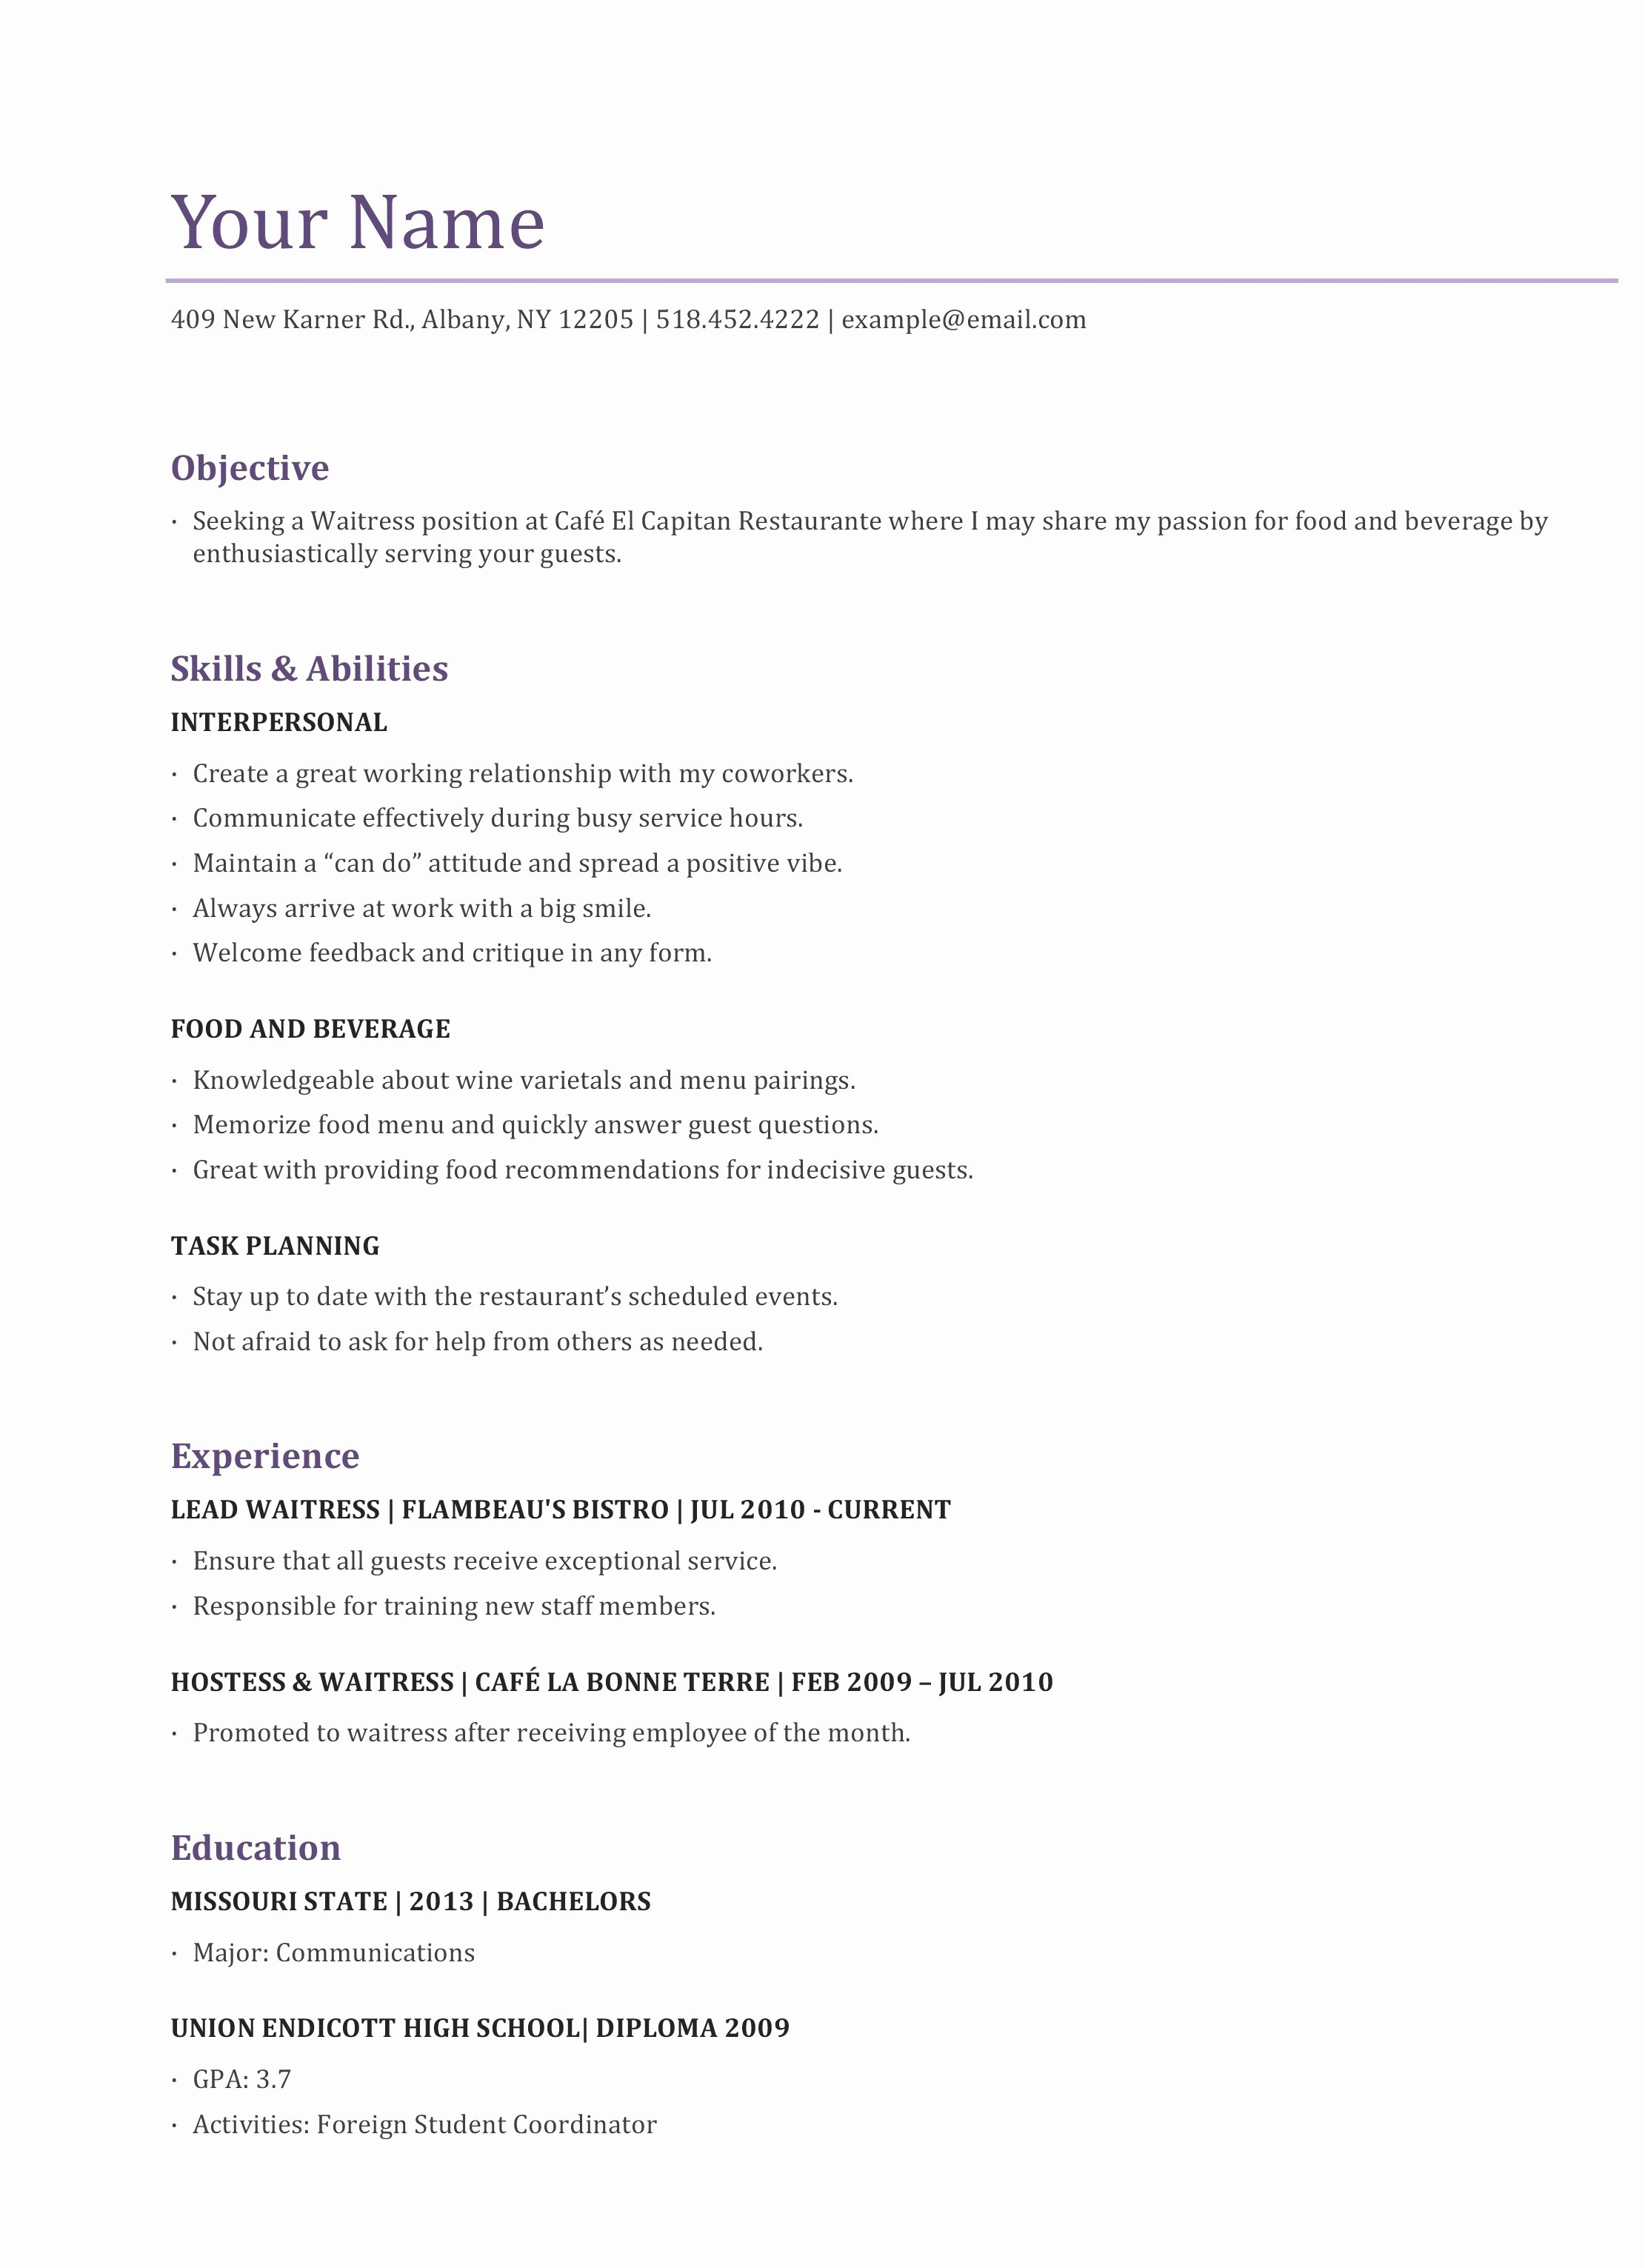 Management Skills Examples for Resume - 22 Unique Management Skills Resume